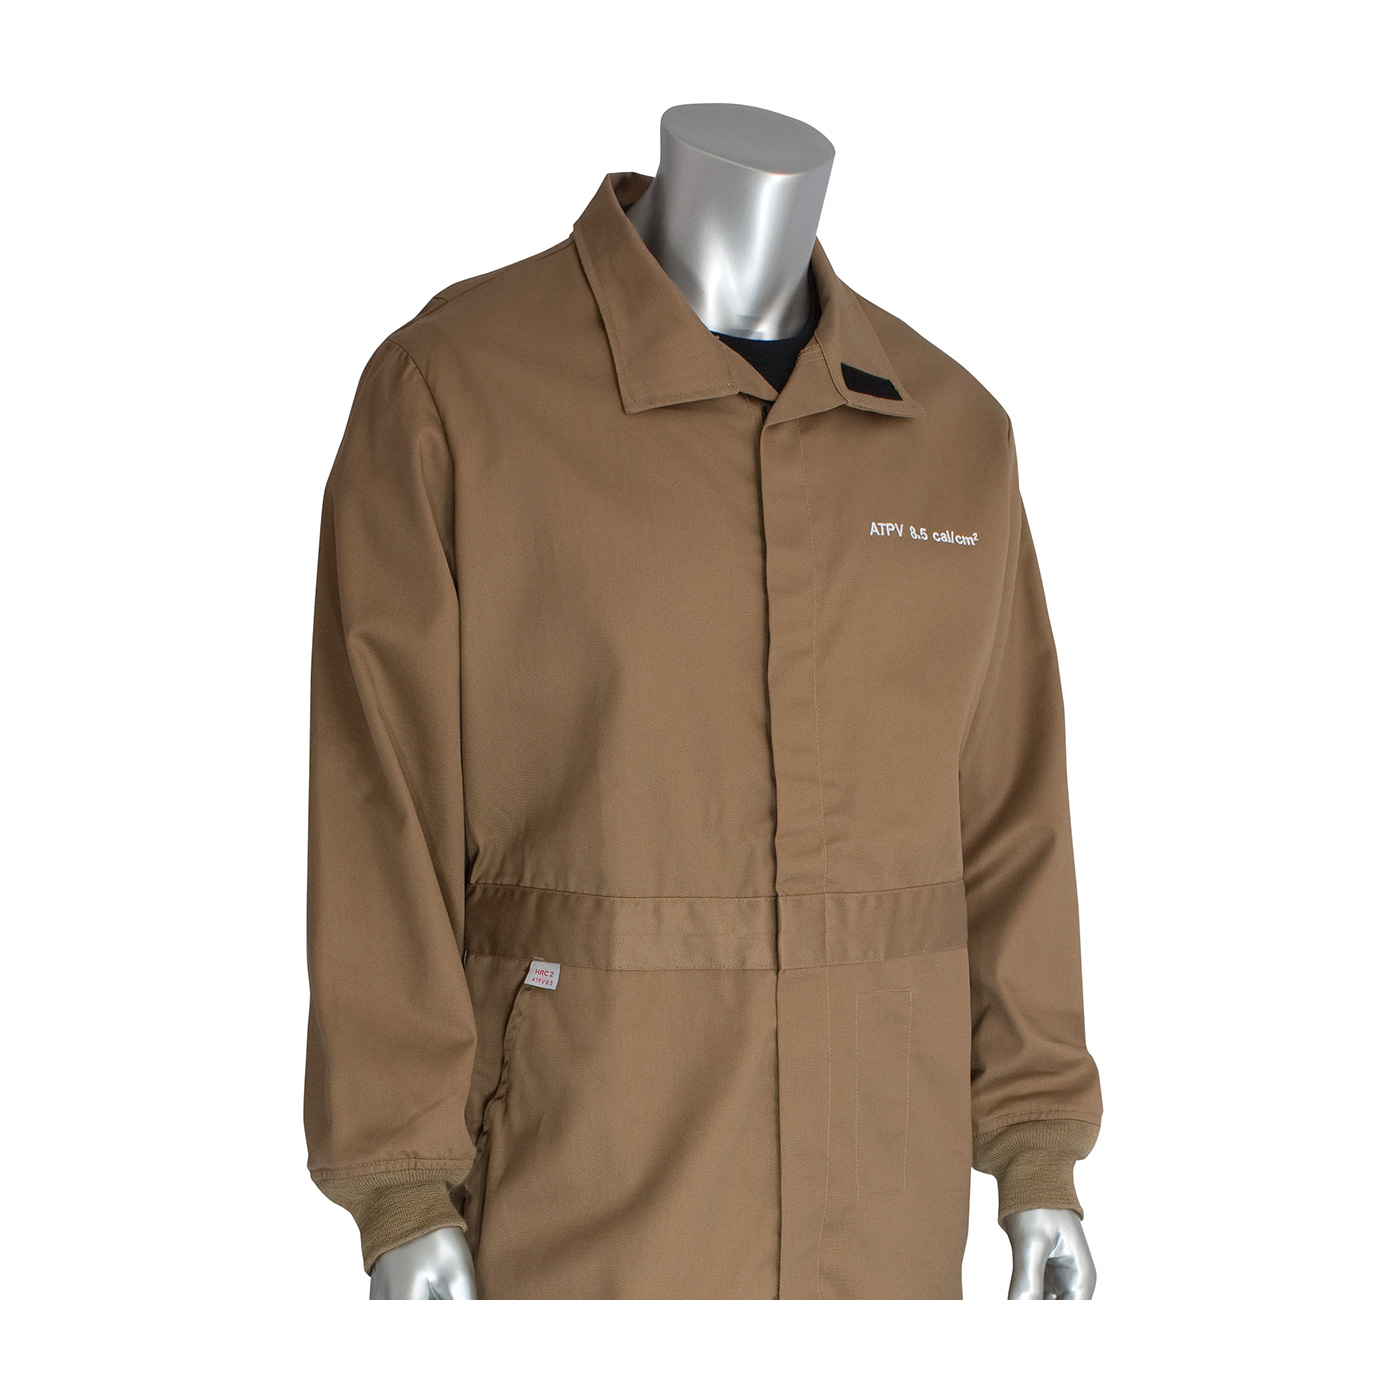 AR/FR Dual Certified Coverall with Insect Repellant - 8 Cal/cm2, Tan, S